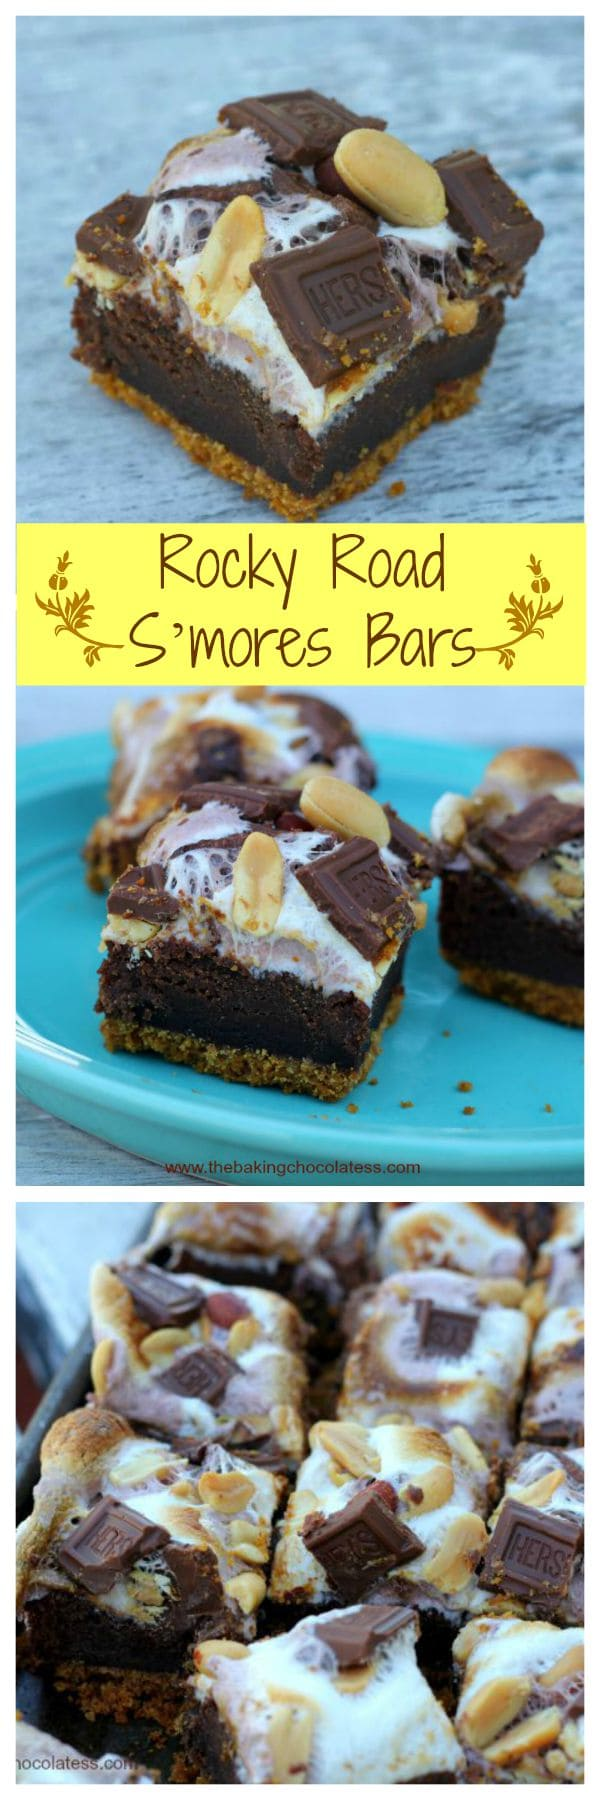 Rocky Road S'mores Bars - Toasted mini marshmallows, milk chocolate, roasted salted peanuts on top of a rich brownie layer on top of a graham cracker crust.